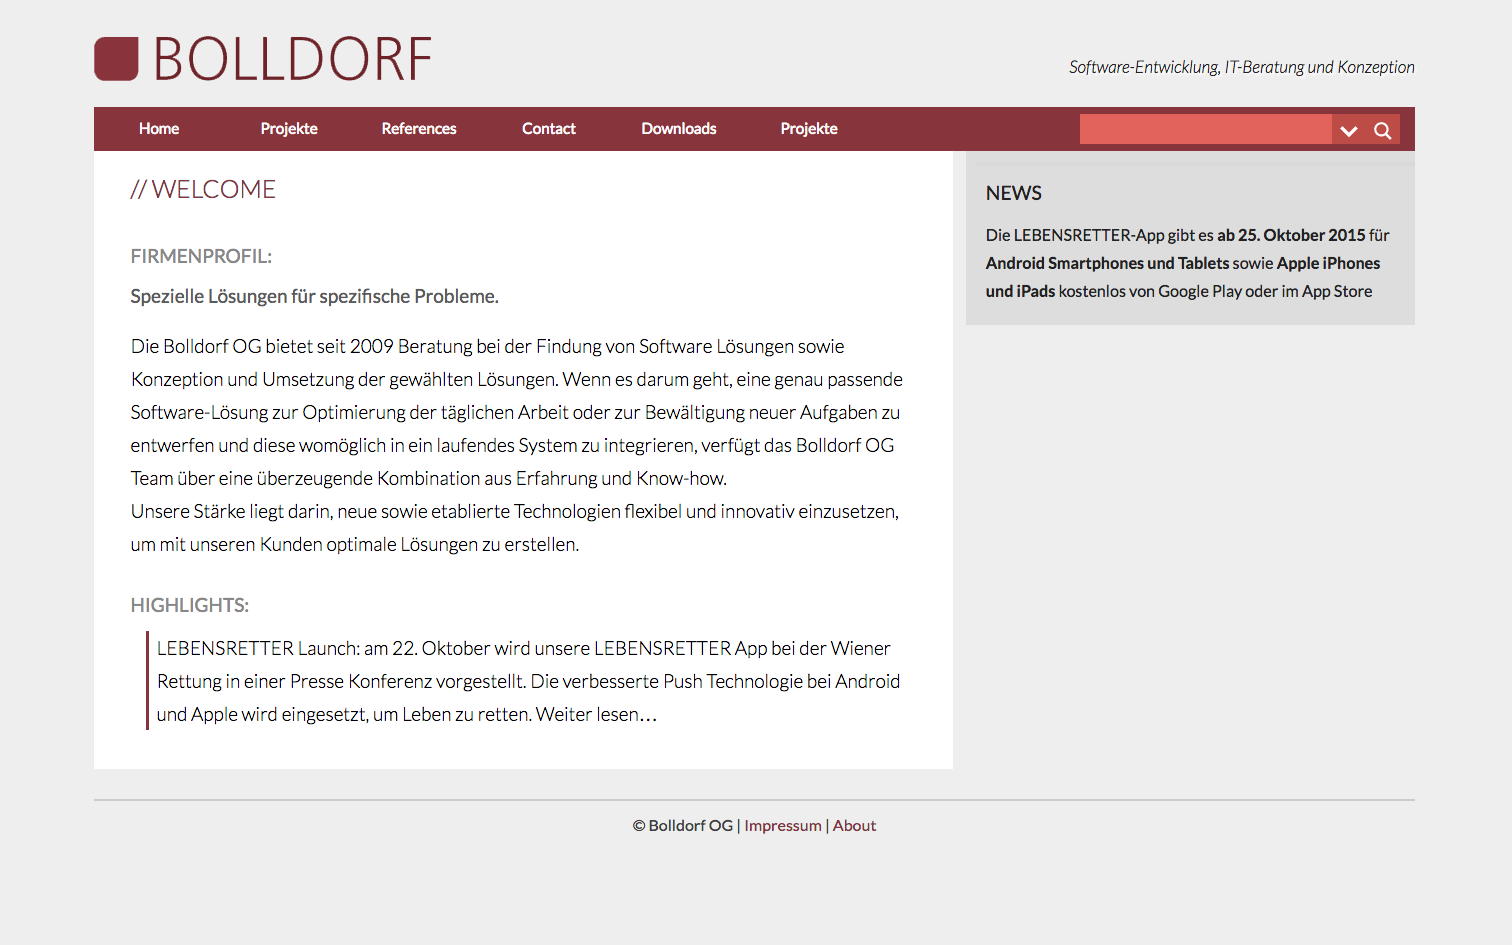 wordpress-theme-bolldorf-by-guillaume-belfiore.html